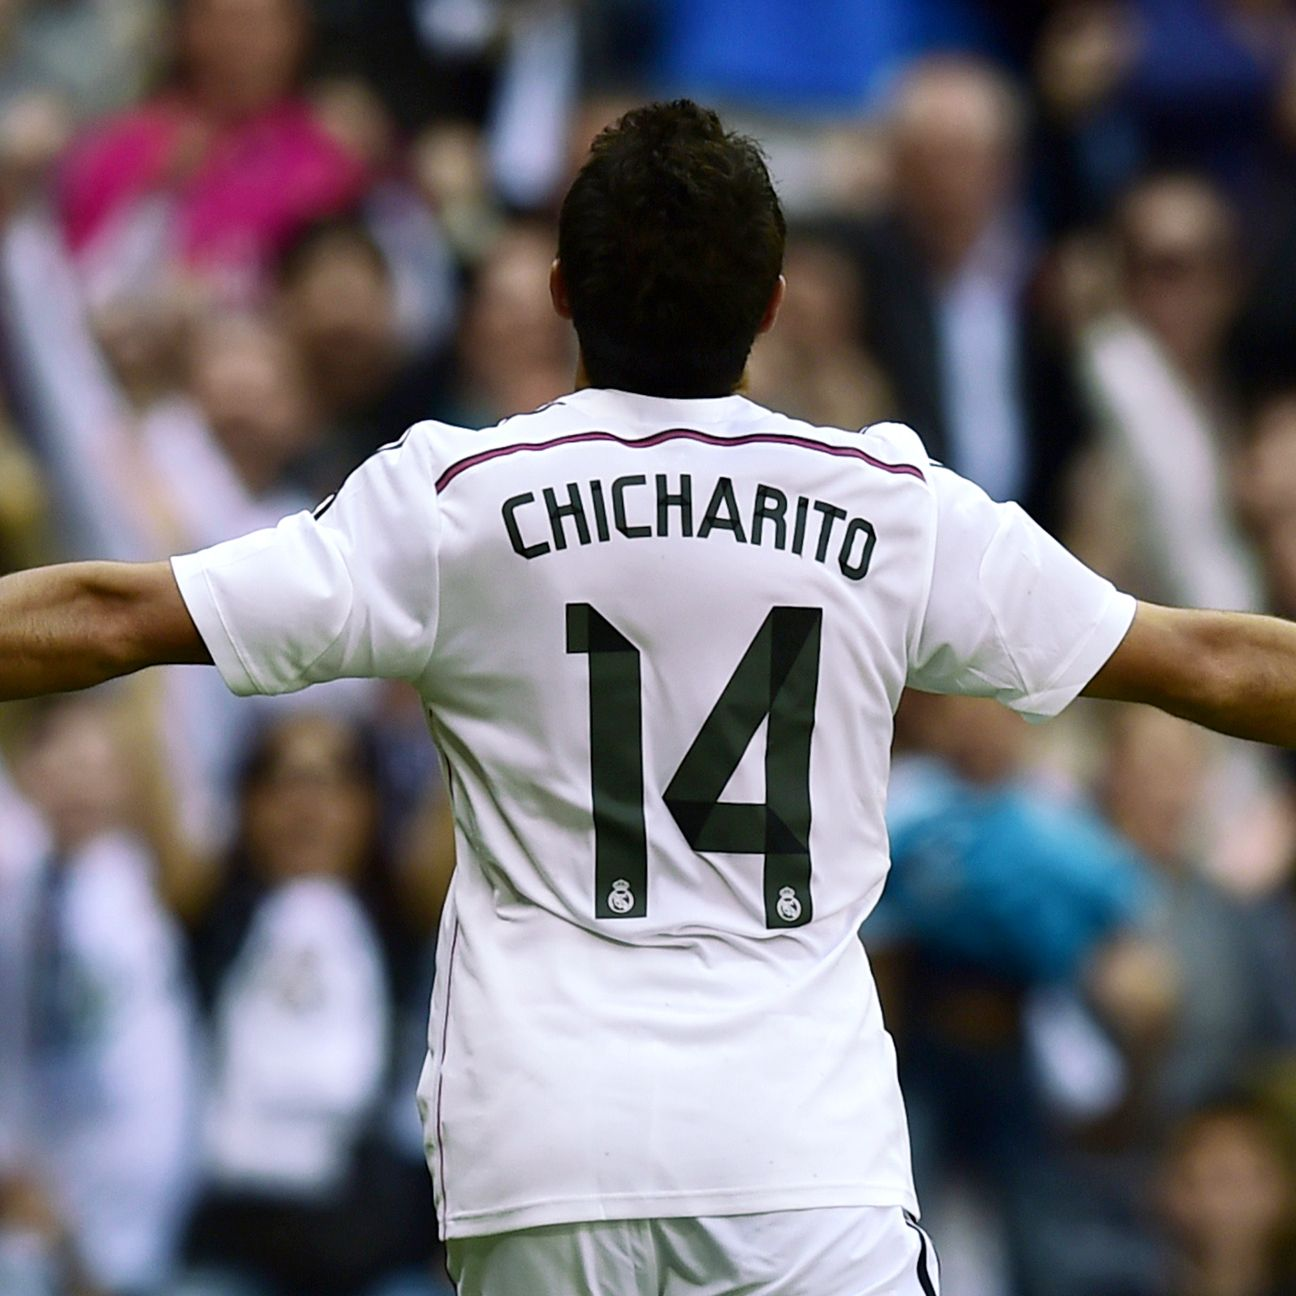 Chicharito's winning goal was a deserved reward for his tireless effort against Atletico.